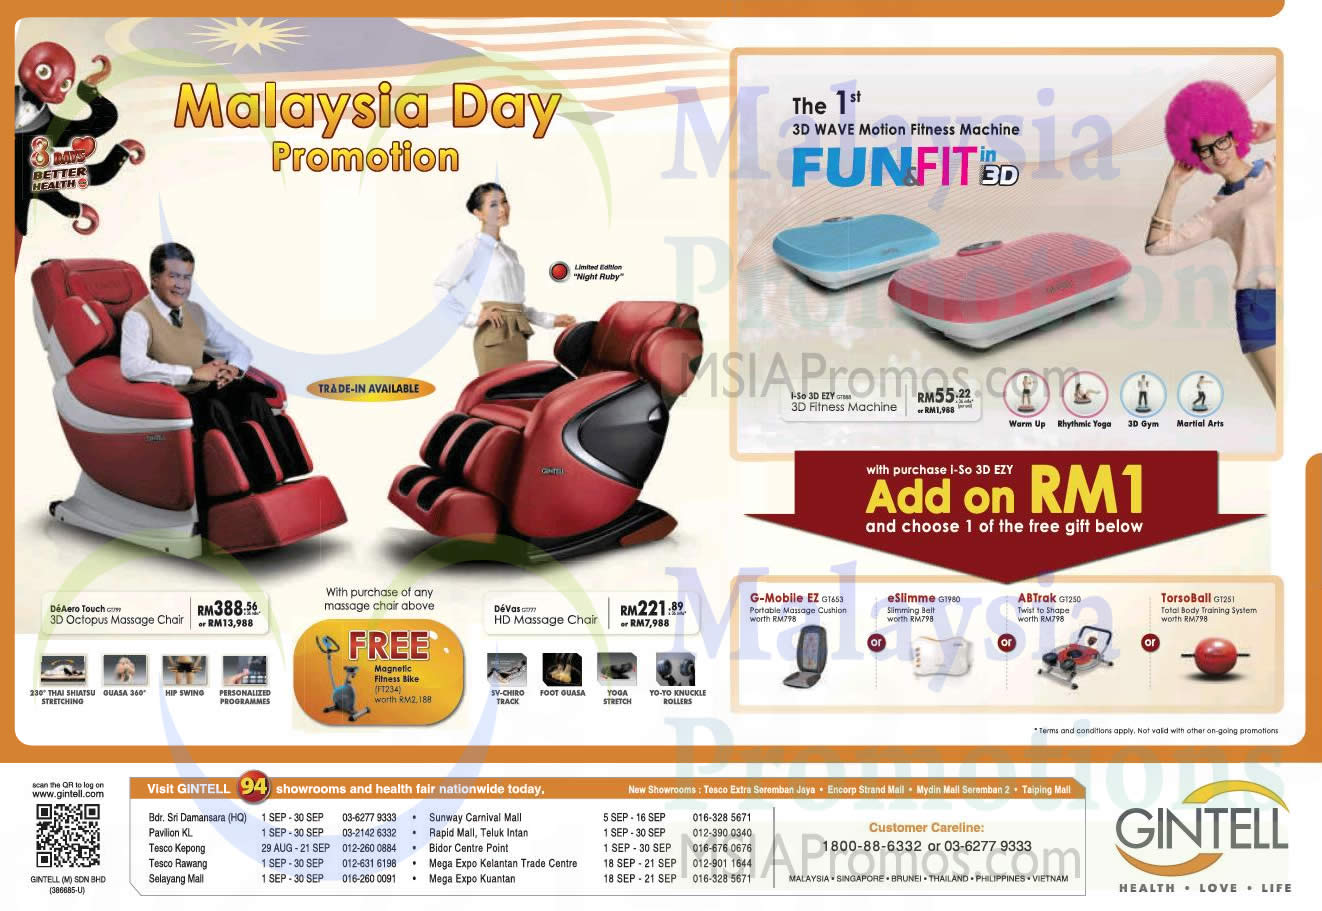 gintell devas massage chair tagged posts aug 2018 msiapromos com